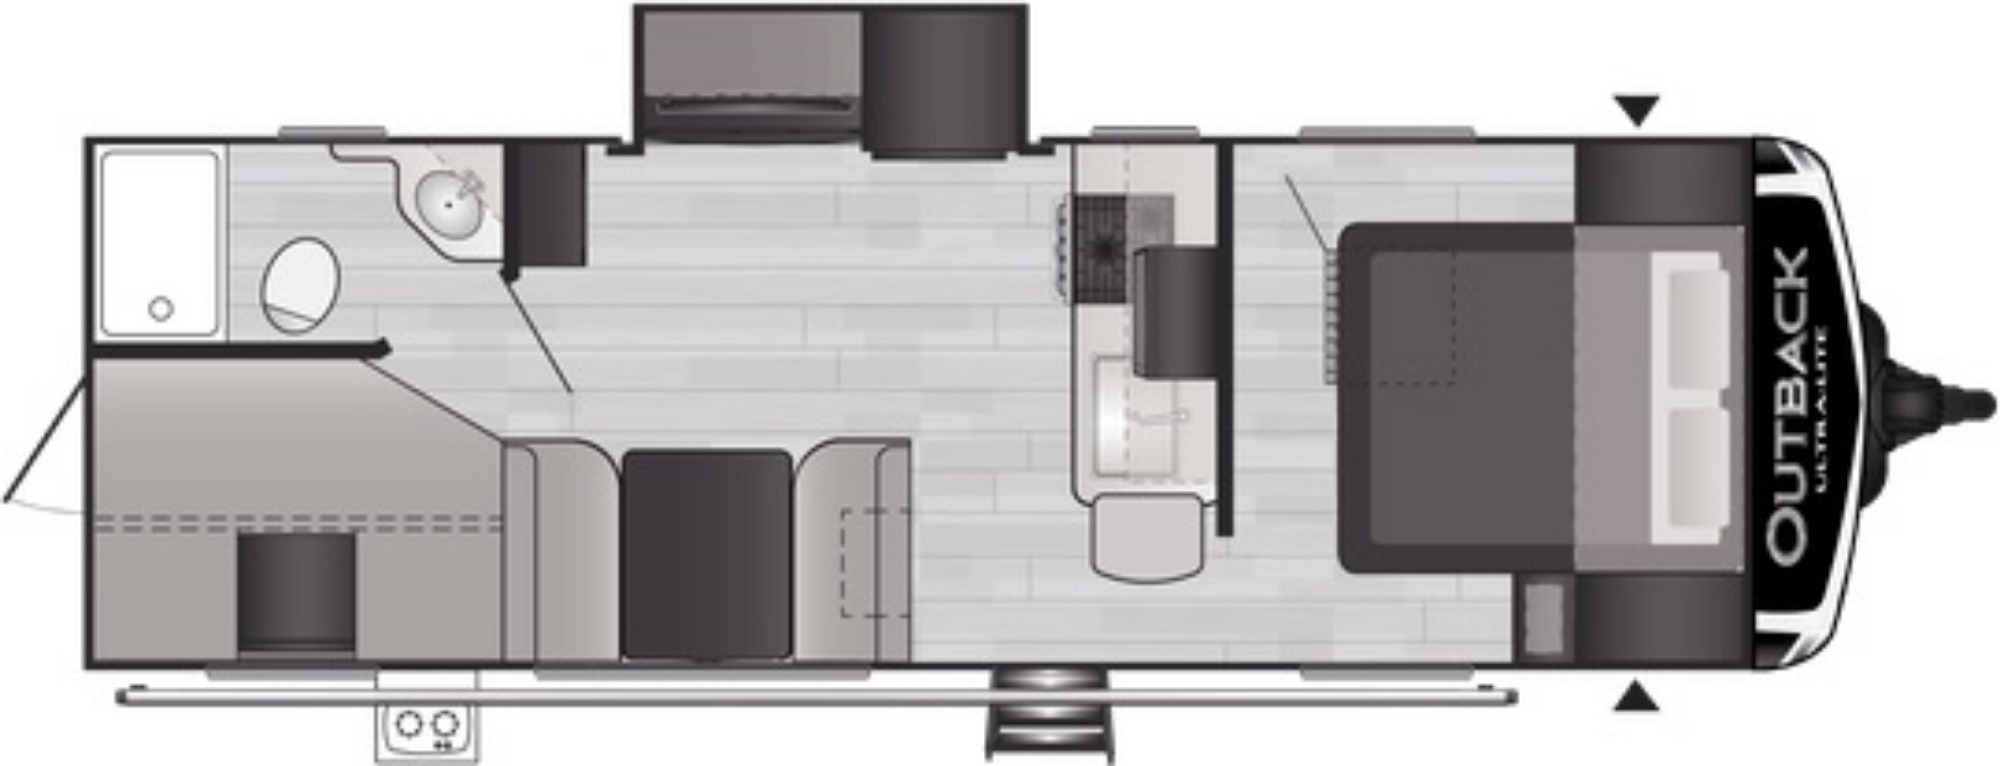 View Floor Plan for 2021 KEYSTONE OUTBACK ULTRA-LITE 244UBH